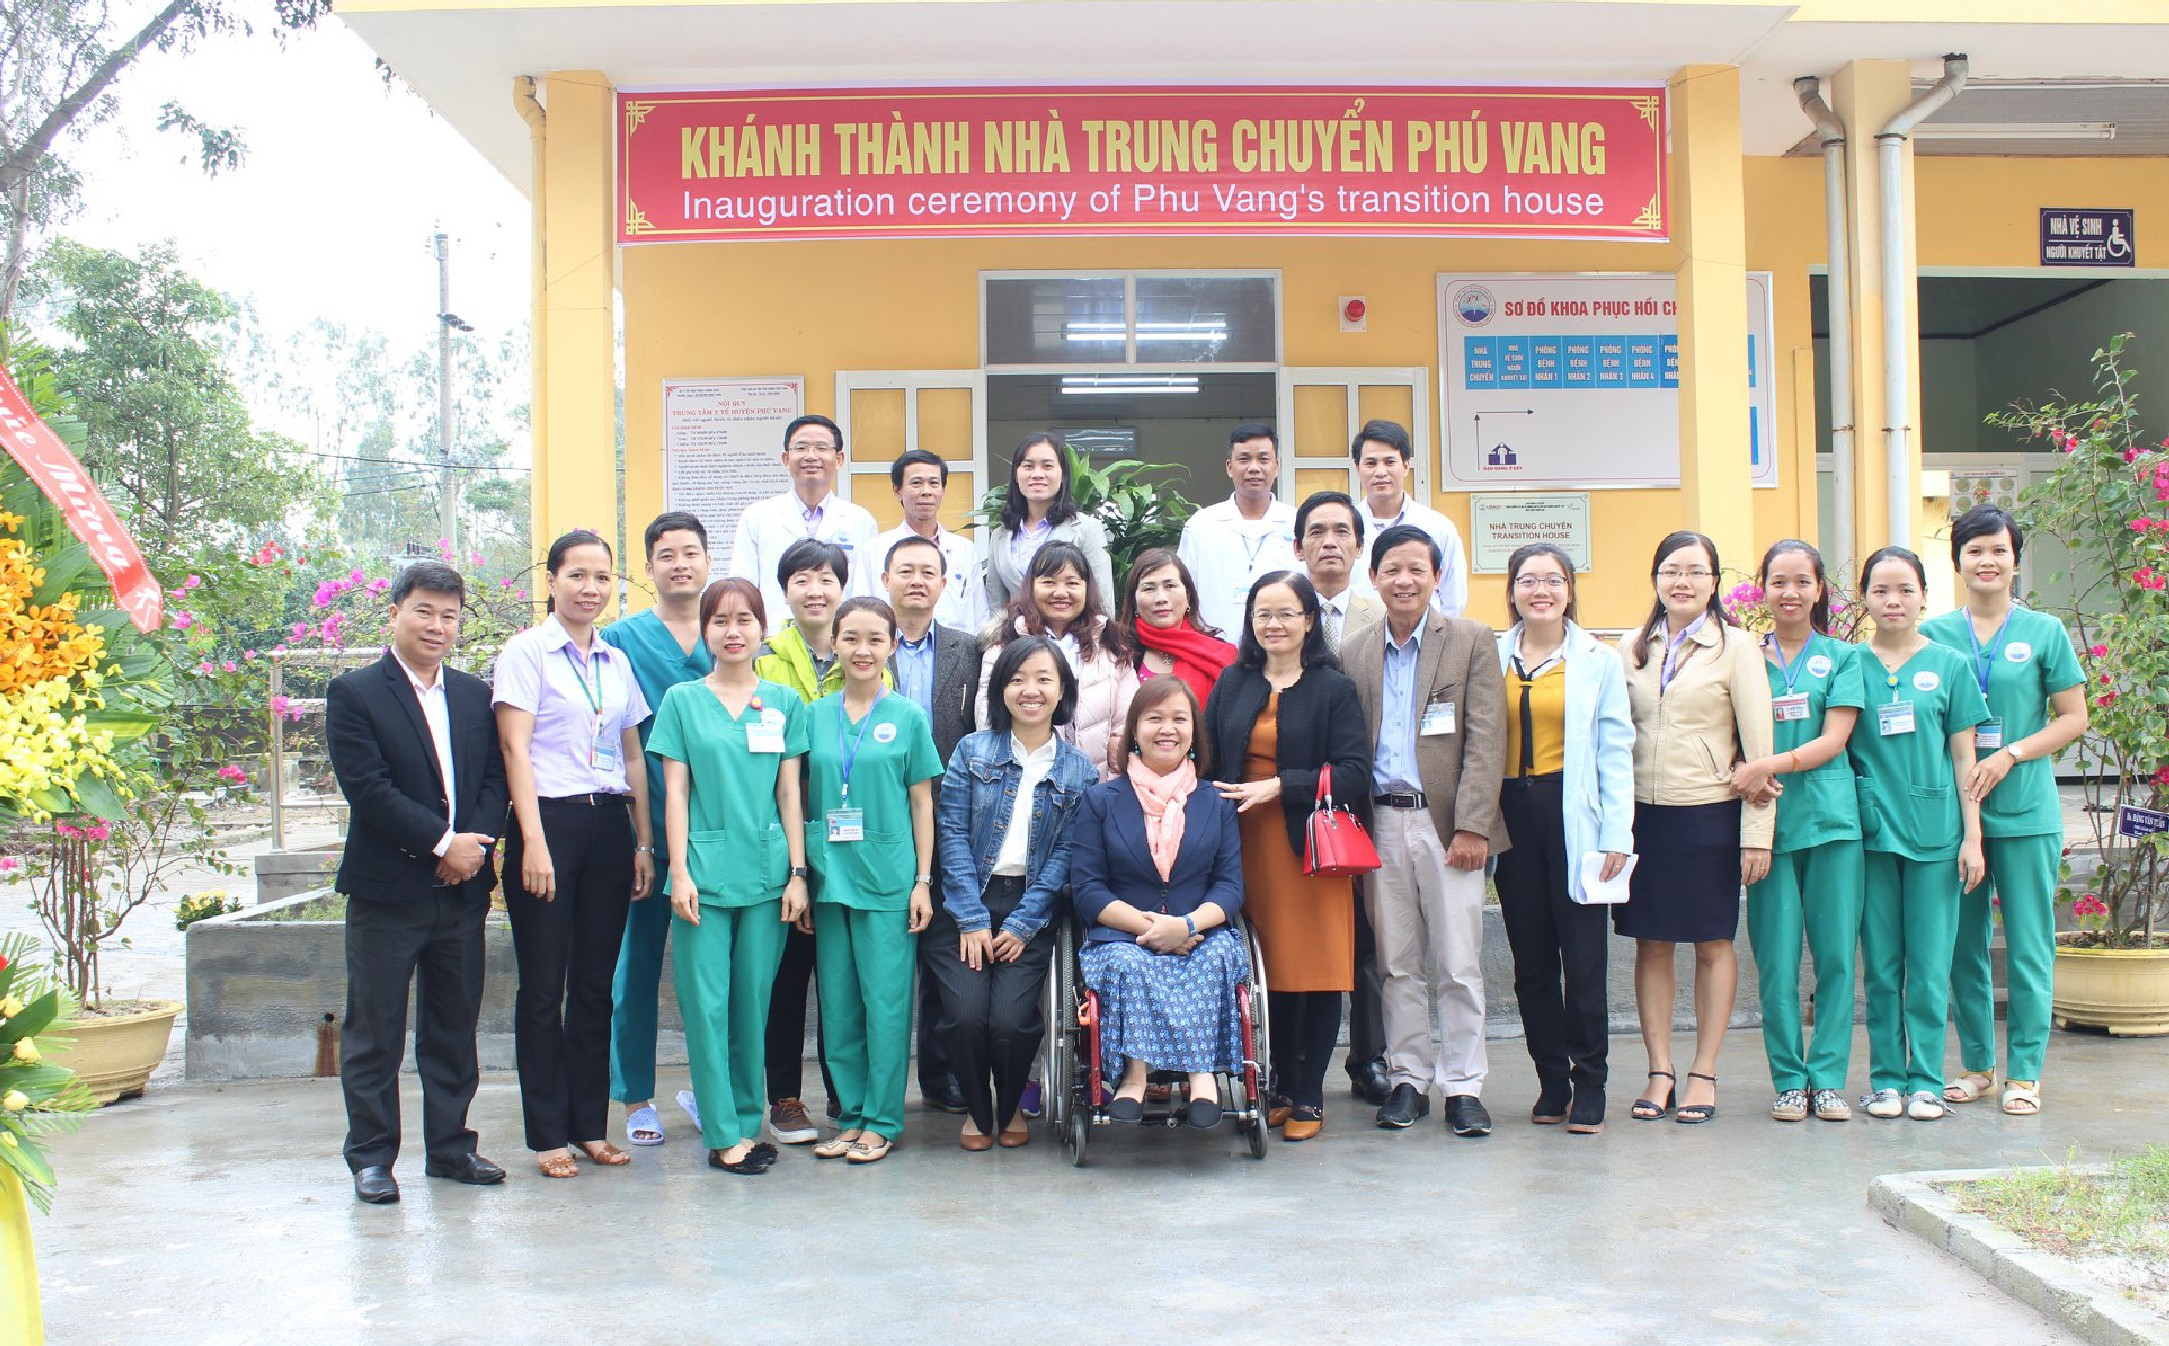 Thai Binh - Empowerment of women and girls with disabilities